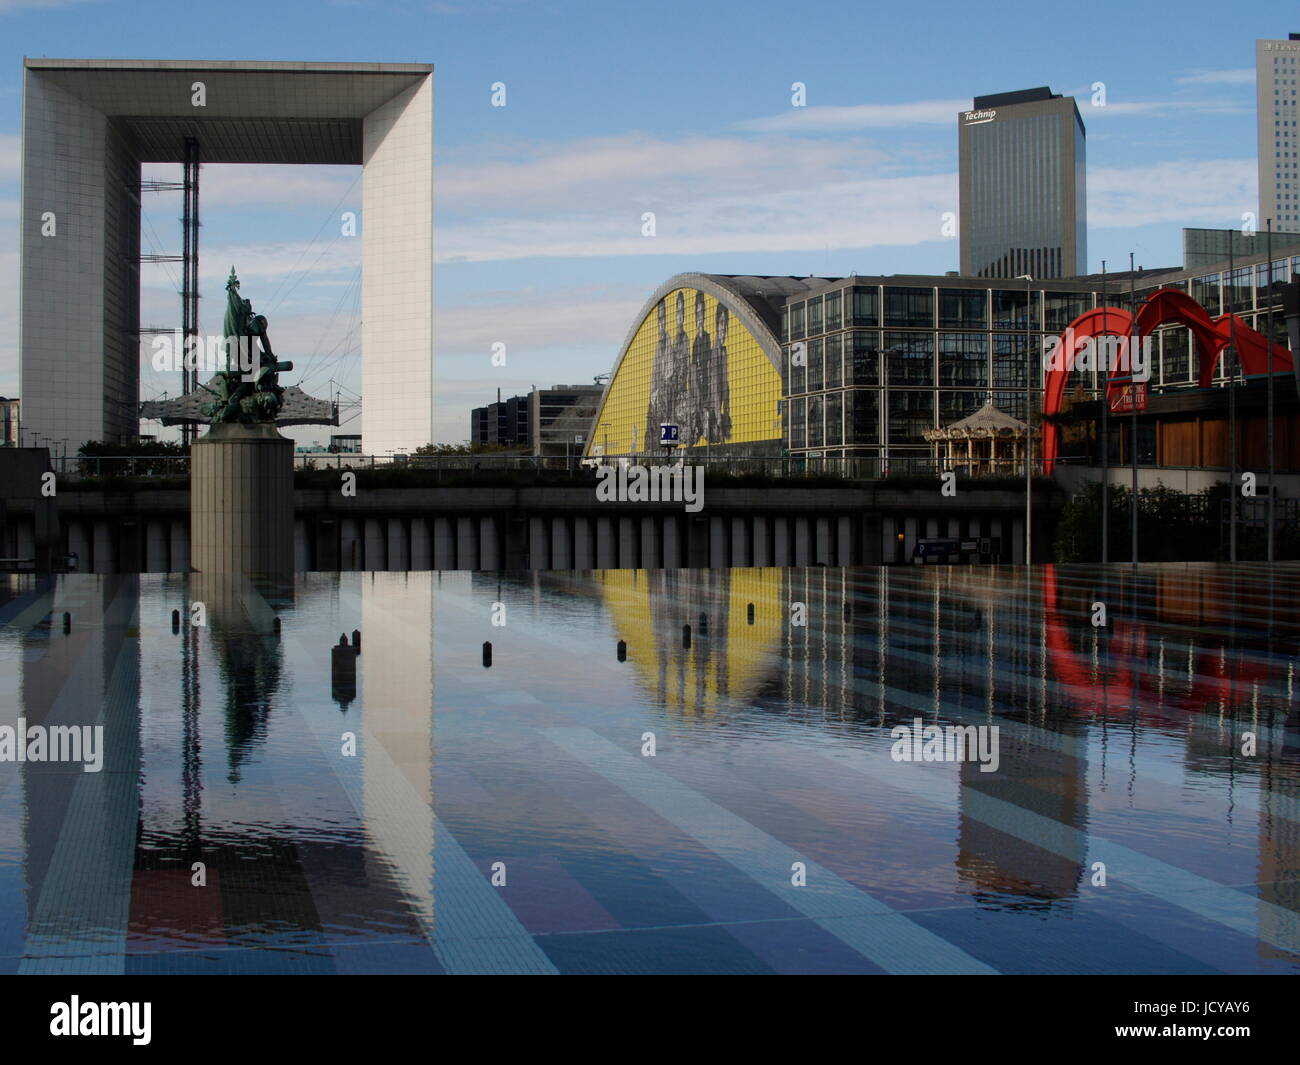 PARIS LA DEFENSE - PARVIS CENTRAL -REFLECTION ON THE WATER SPACE - THE FORUM HALL - THE ARCHE OF SPRECKELSEN © Frédéric Stock Photo